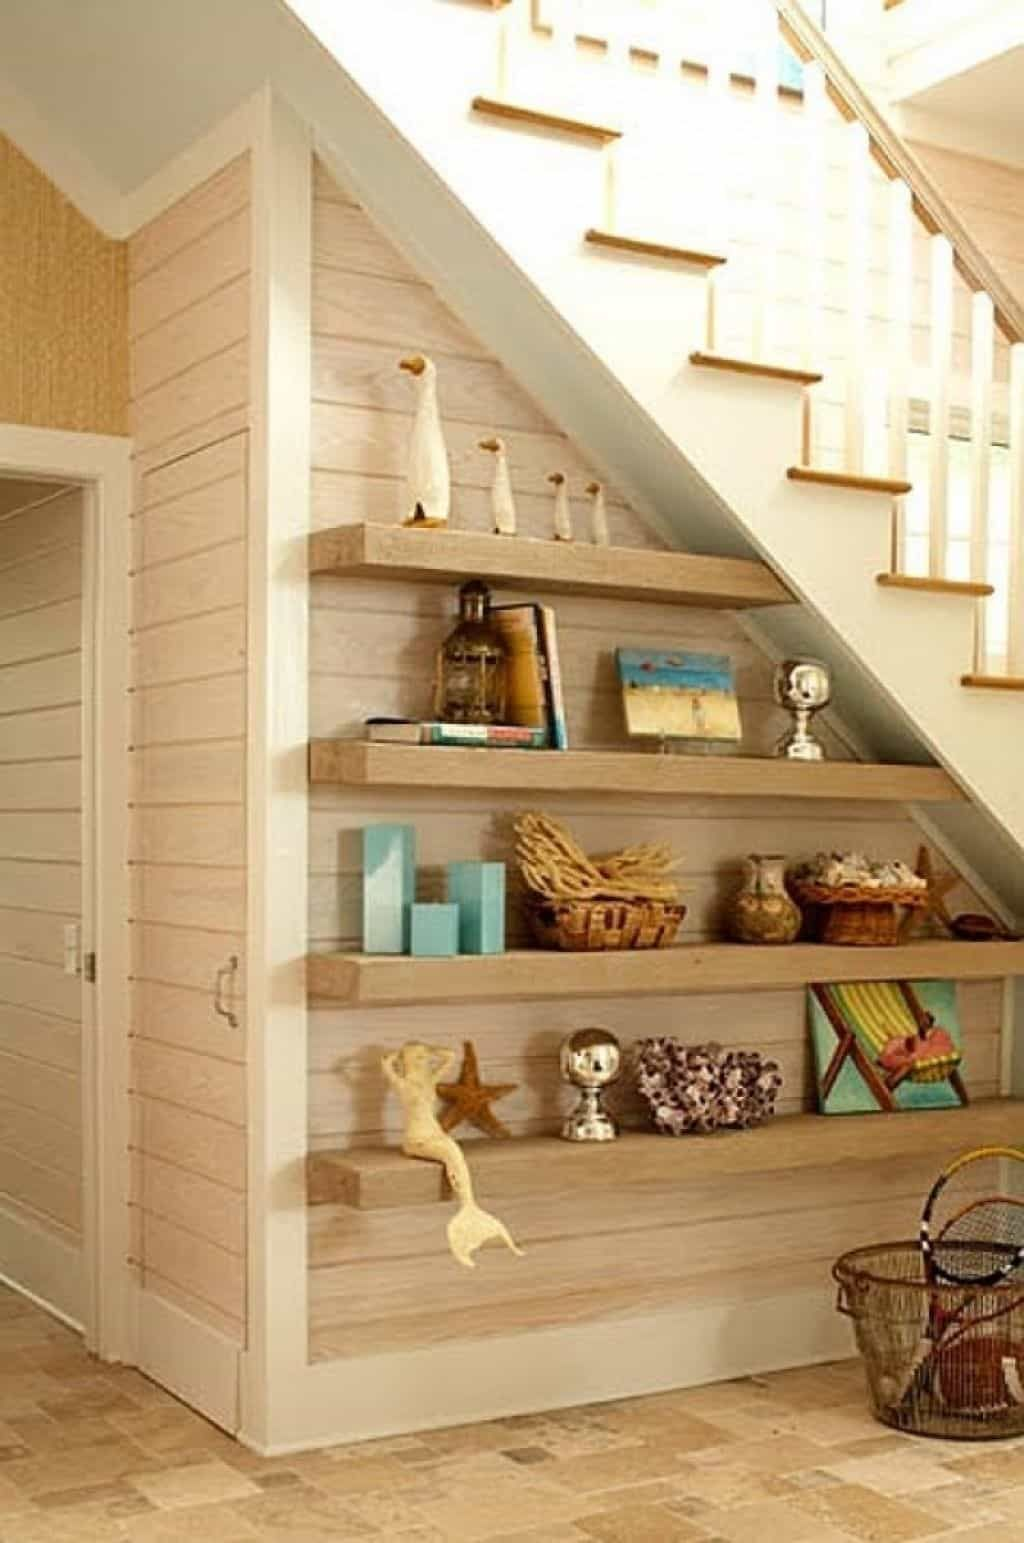 Decorating Ideas For Under Stairs (With images) House